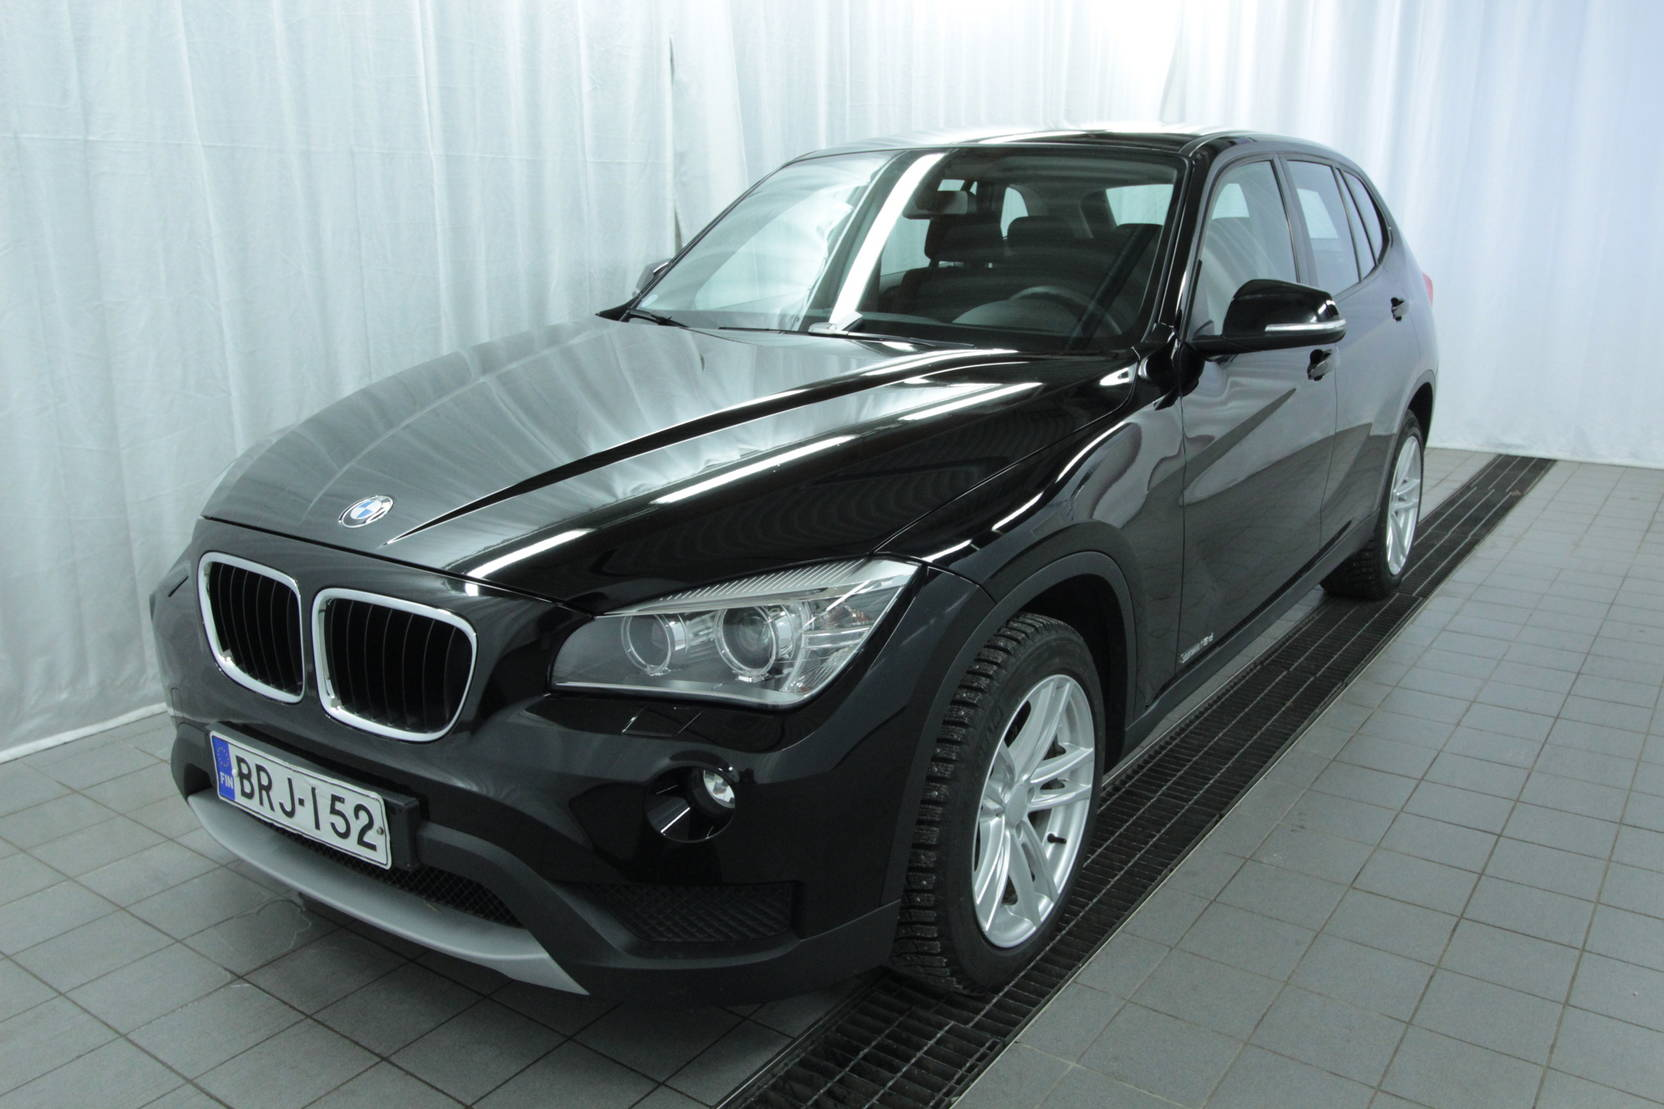 BMW X1 Sdrive18d Twinpower Turbo A Business At detail1